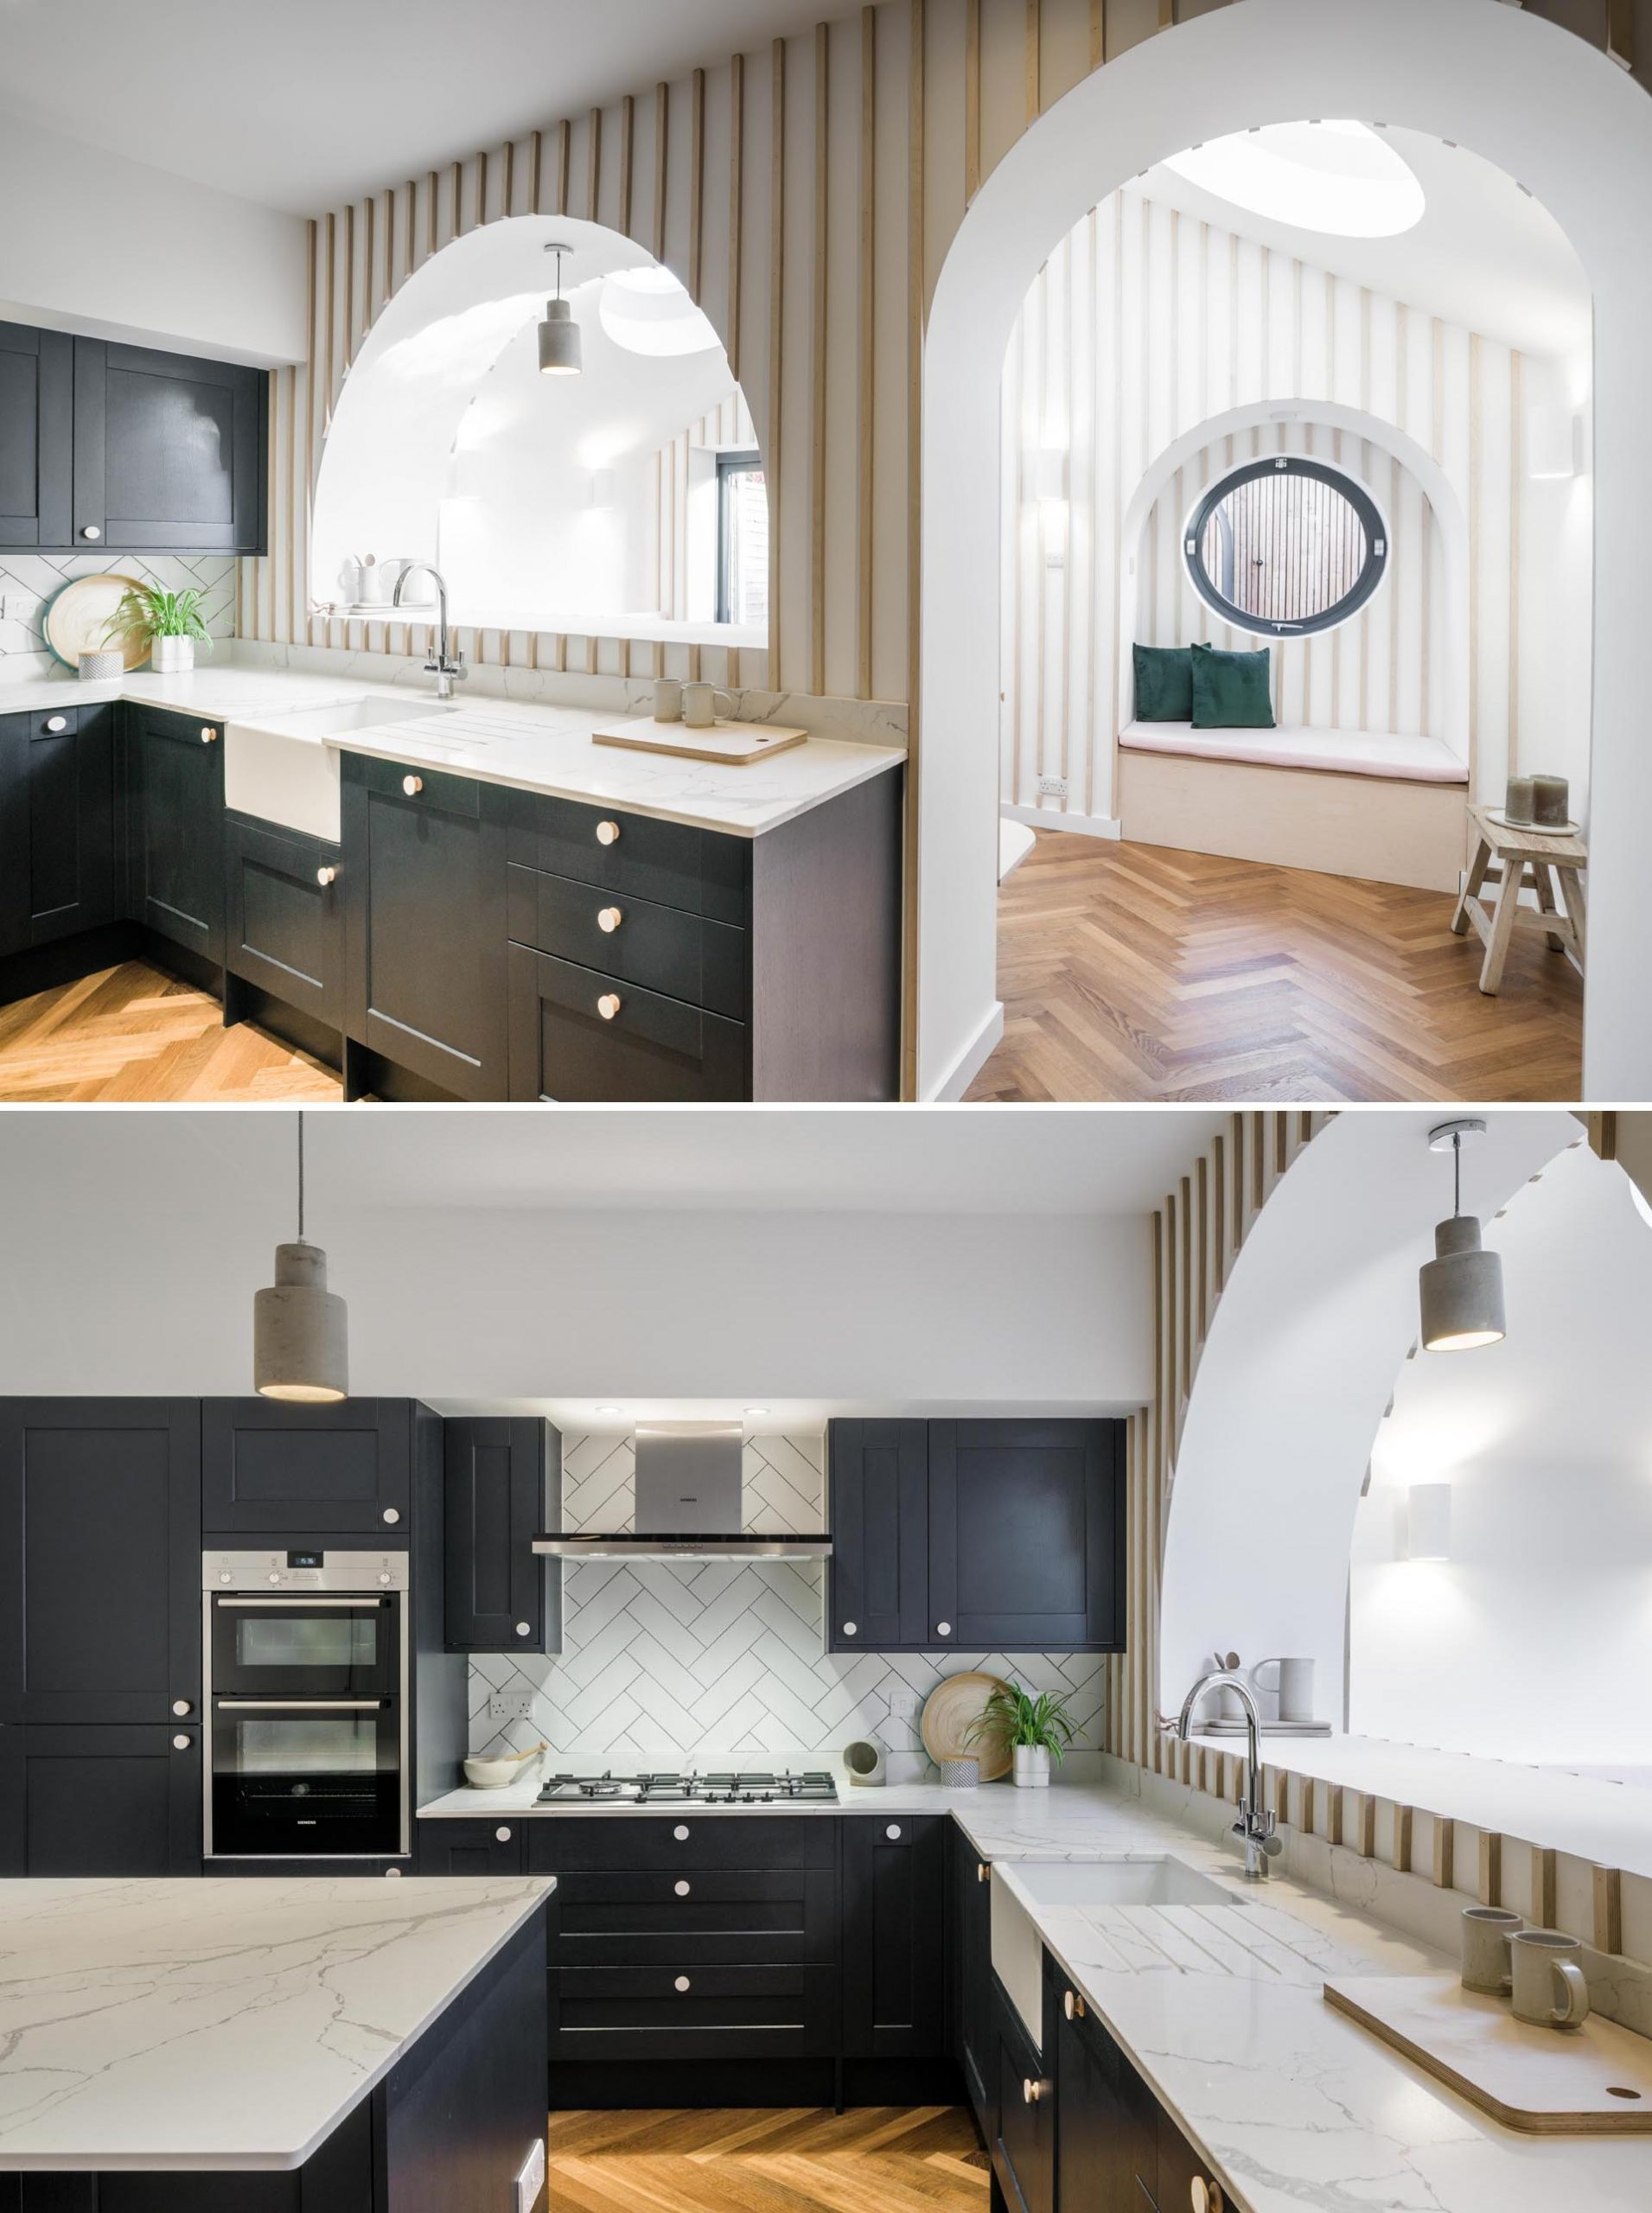 In this contemporary kitchen, black cabinets contrast the white countertop, while an arched pass-through connects to the dining area.